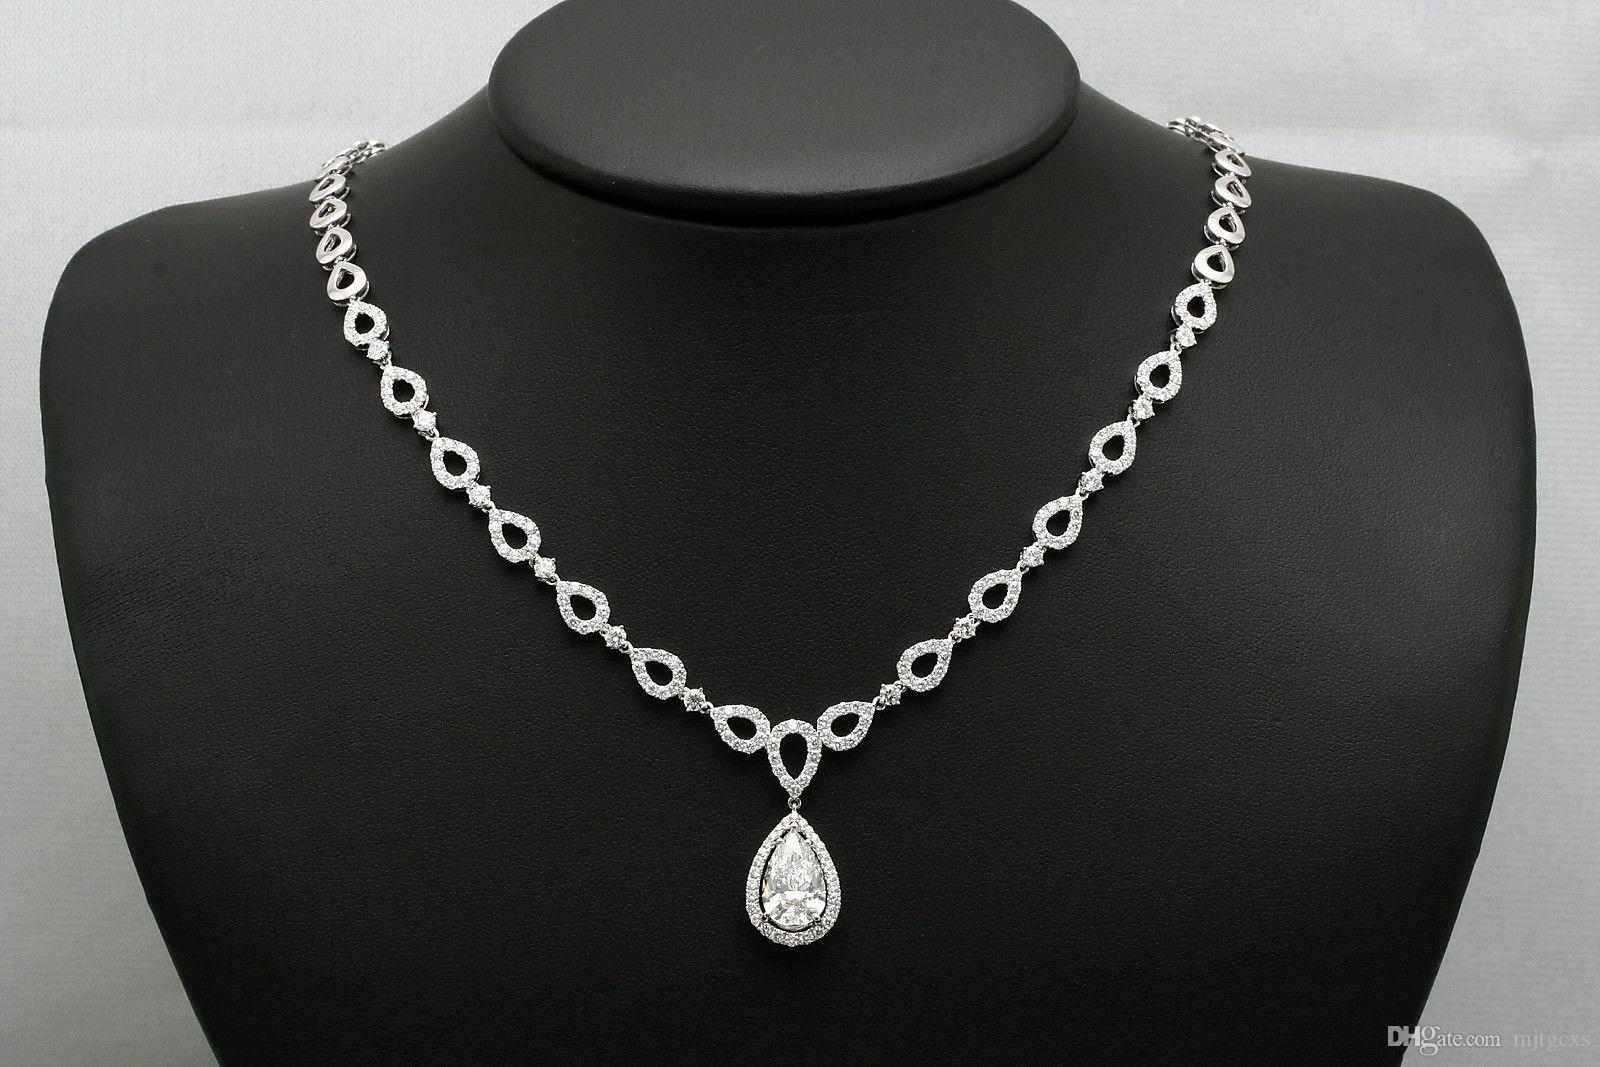 jewellery and image necklace diamond shaped aquamarine pendant berrys white gold pear